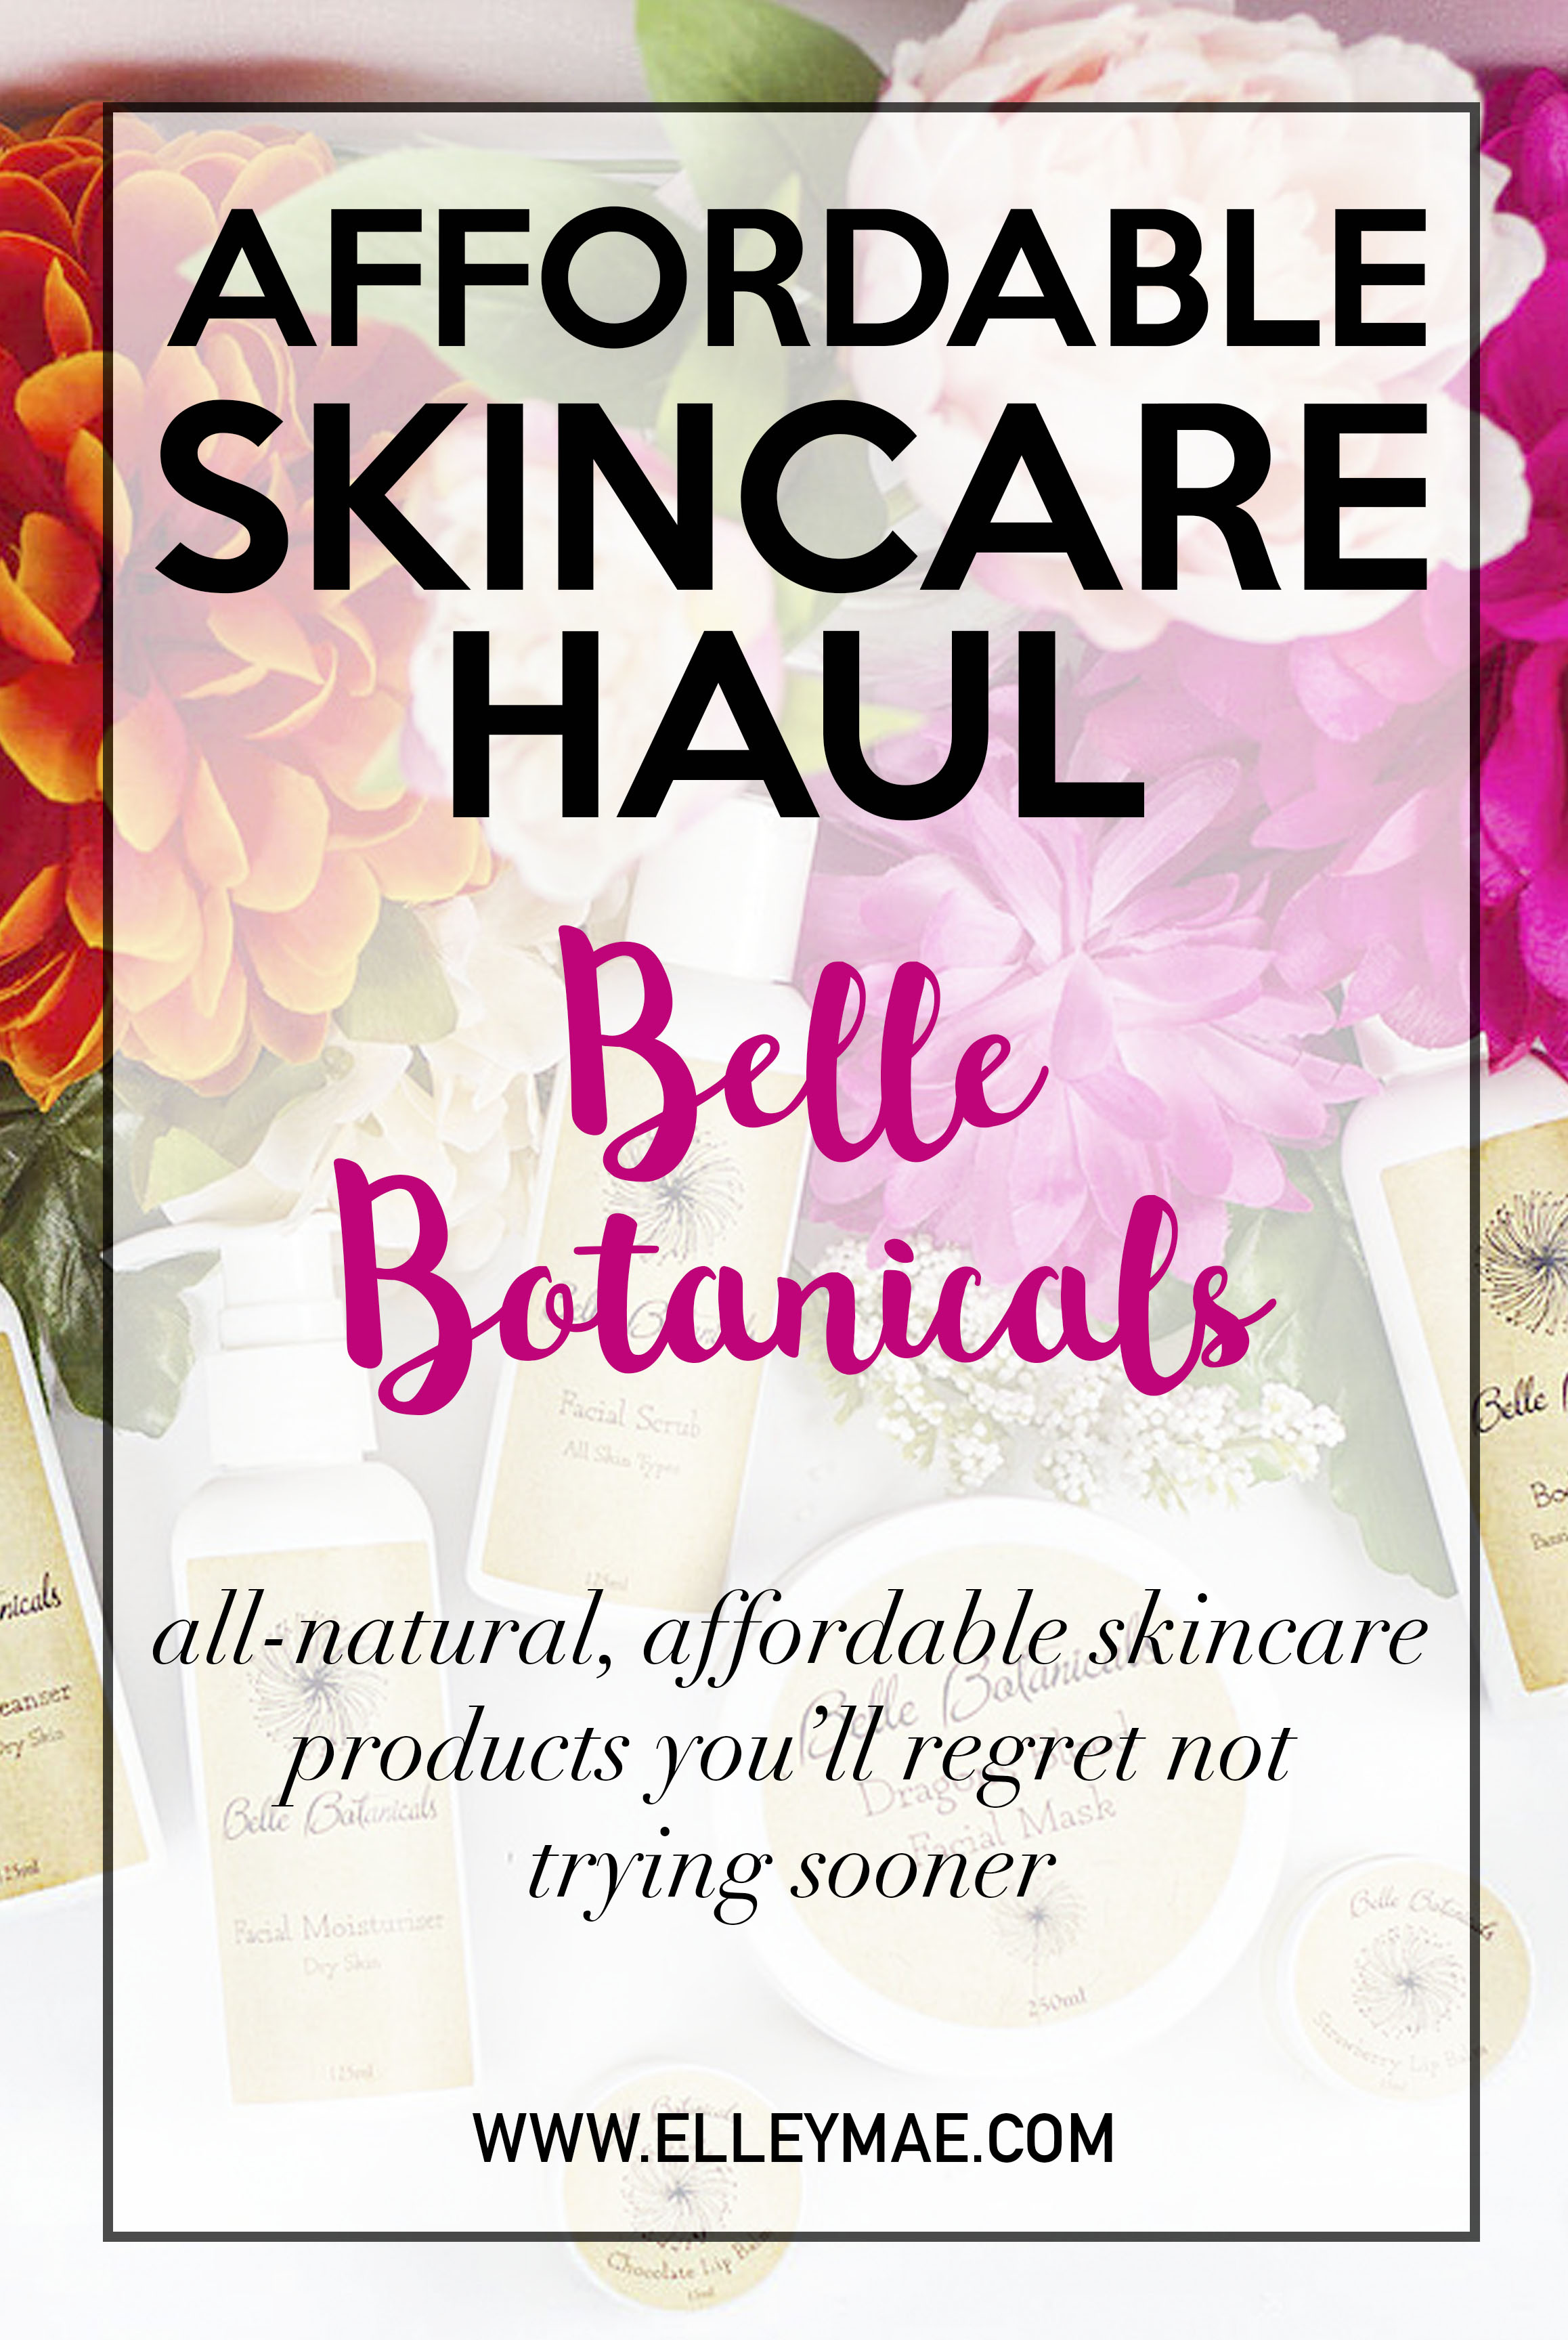 Belle Botanicals - Affordable Skincare Haul